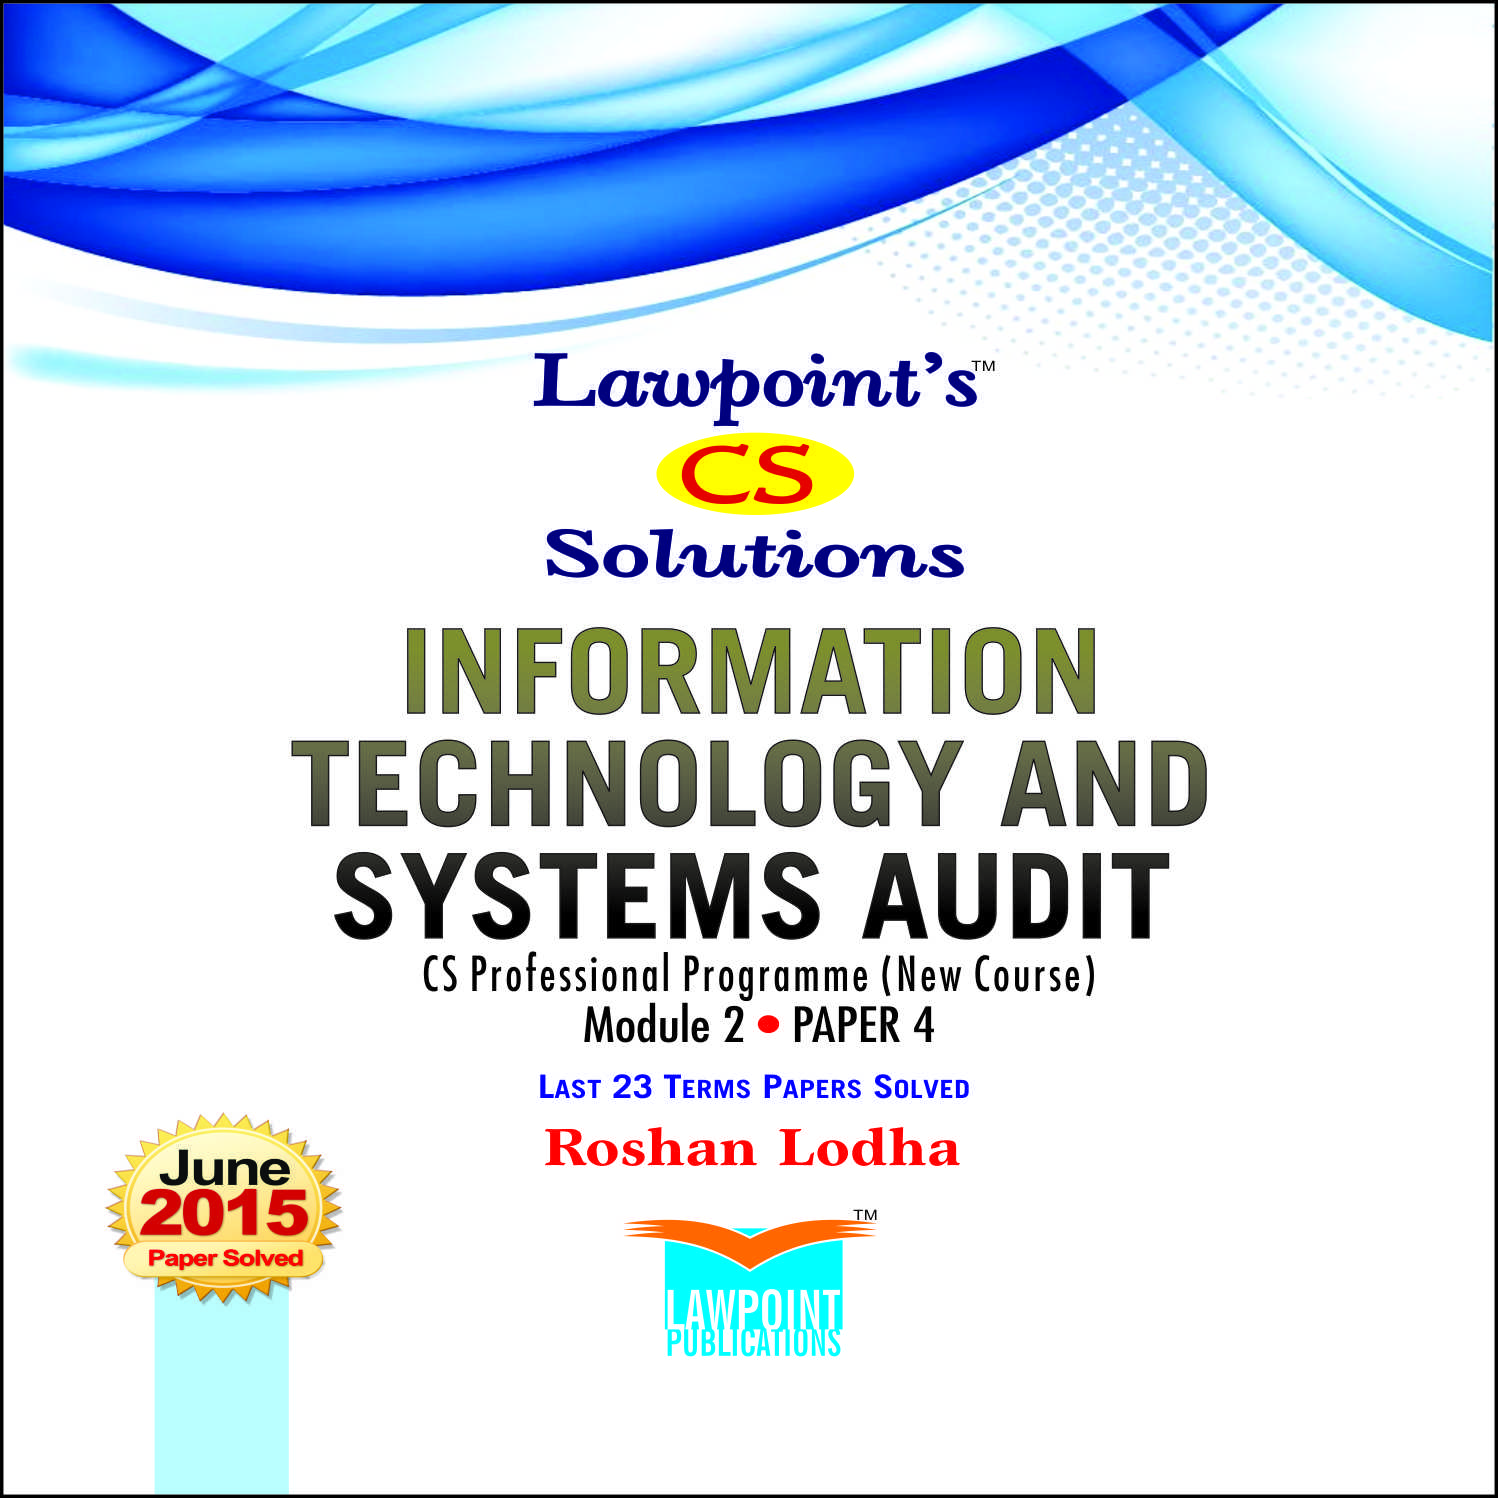 Lawpoint's CS Solutions Information Technology and Systems Audit